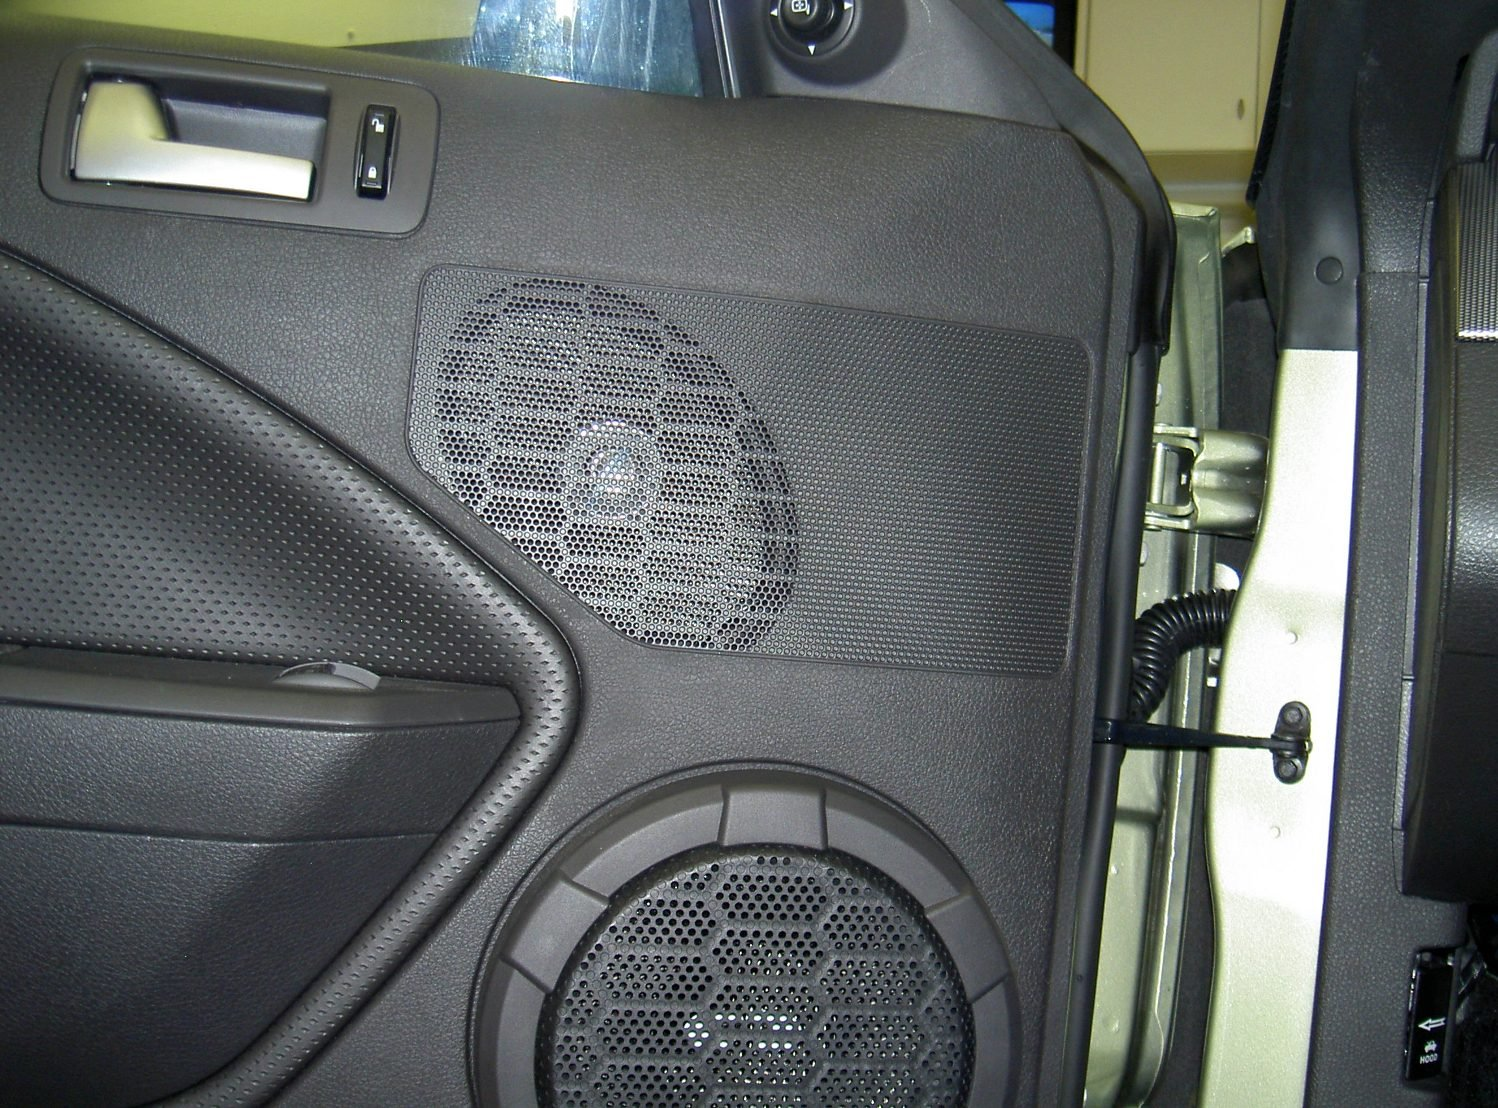 2005 Mustang Gt Has Anyone Replaced The Woofers In The